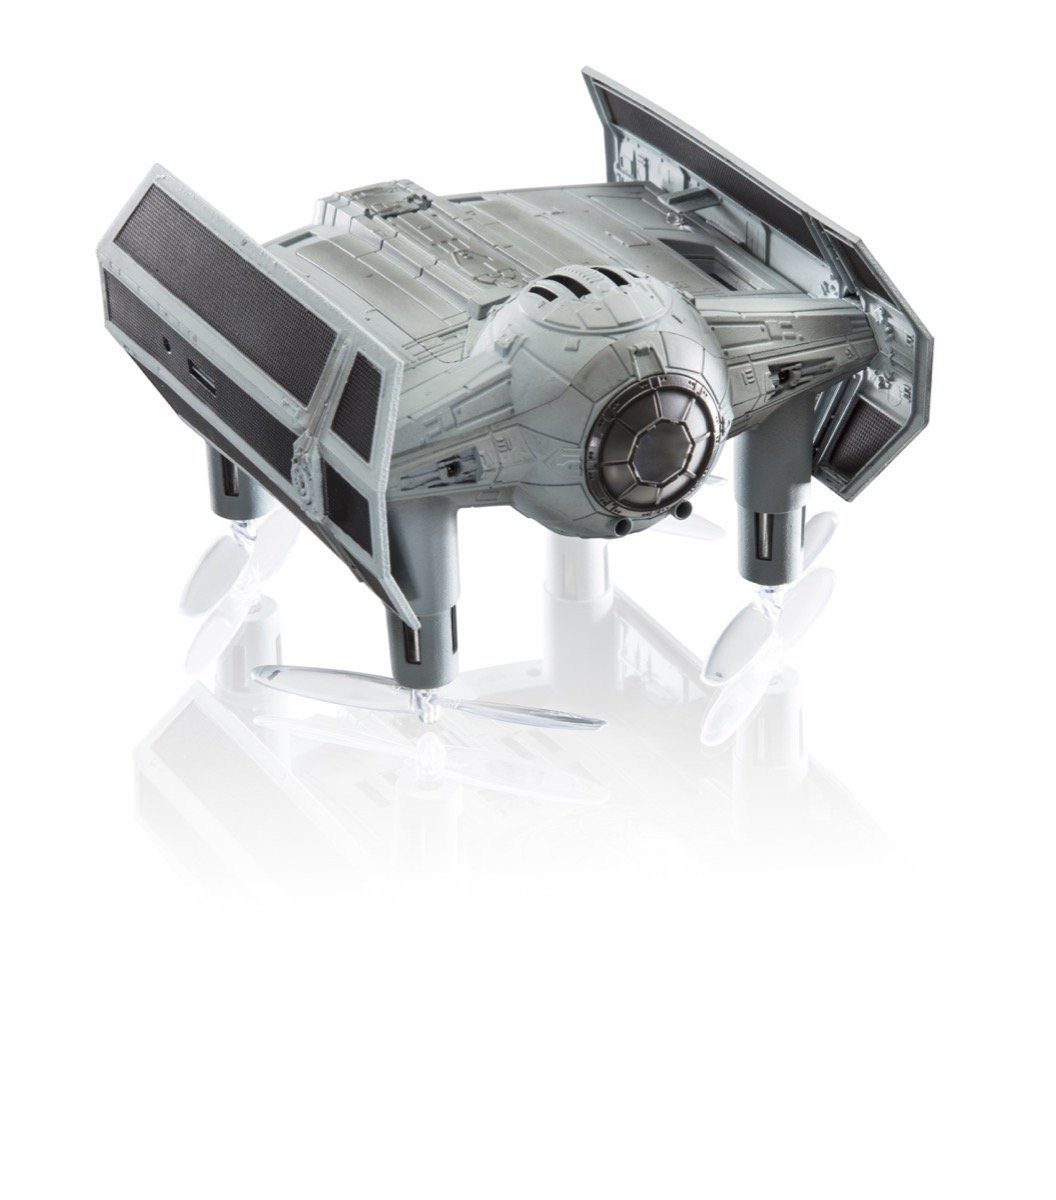 Propel Star Wars Quadcopter: Tie Fighter Collectors Edition Box by Propel Toys